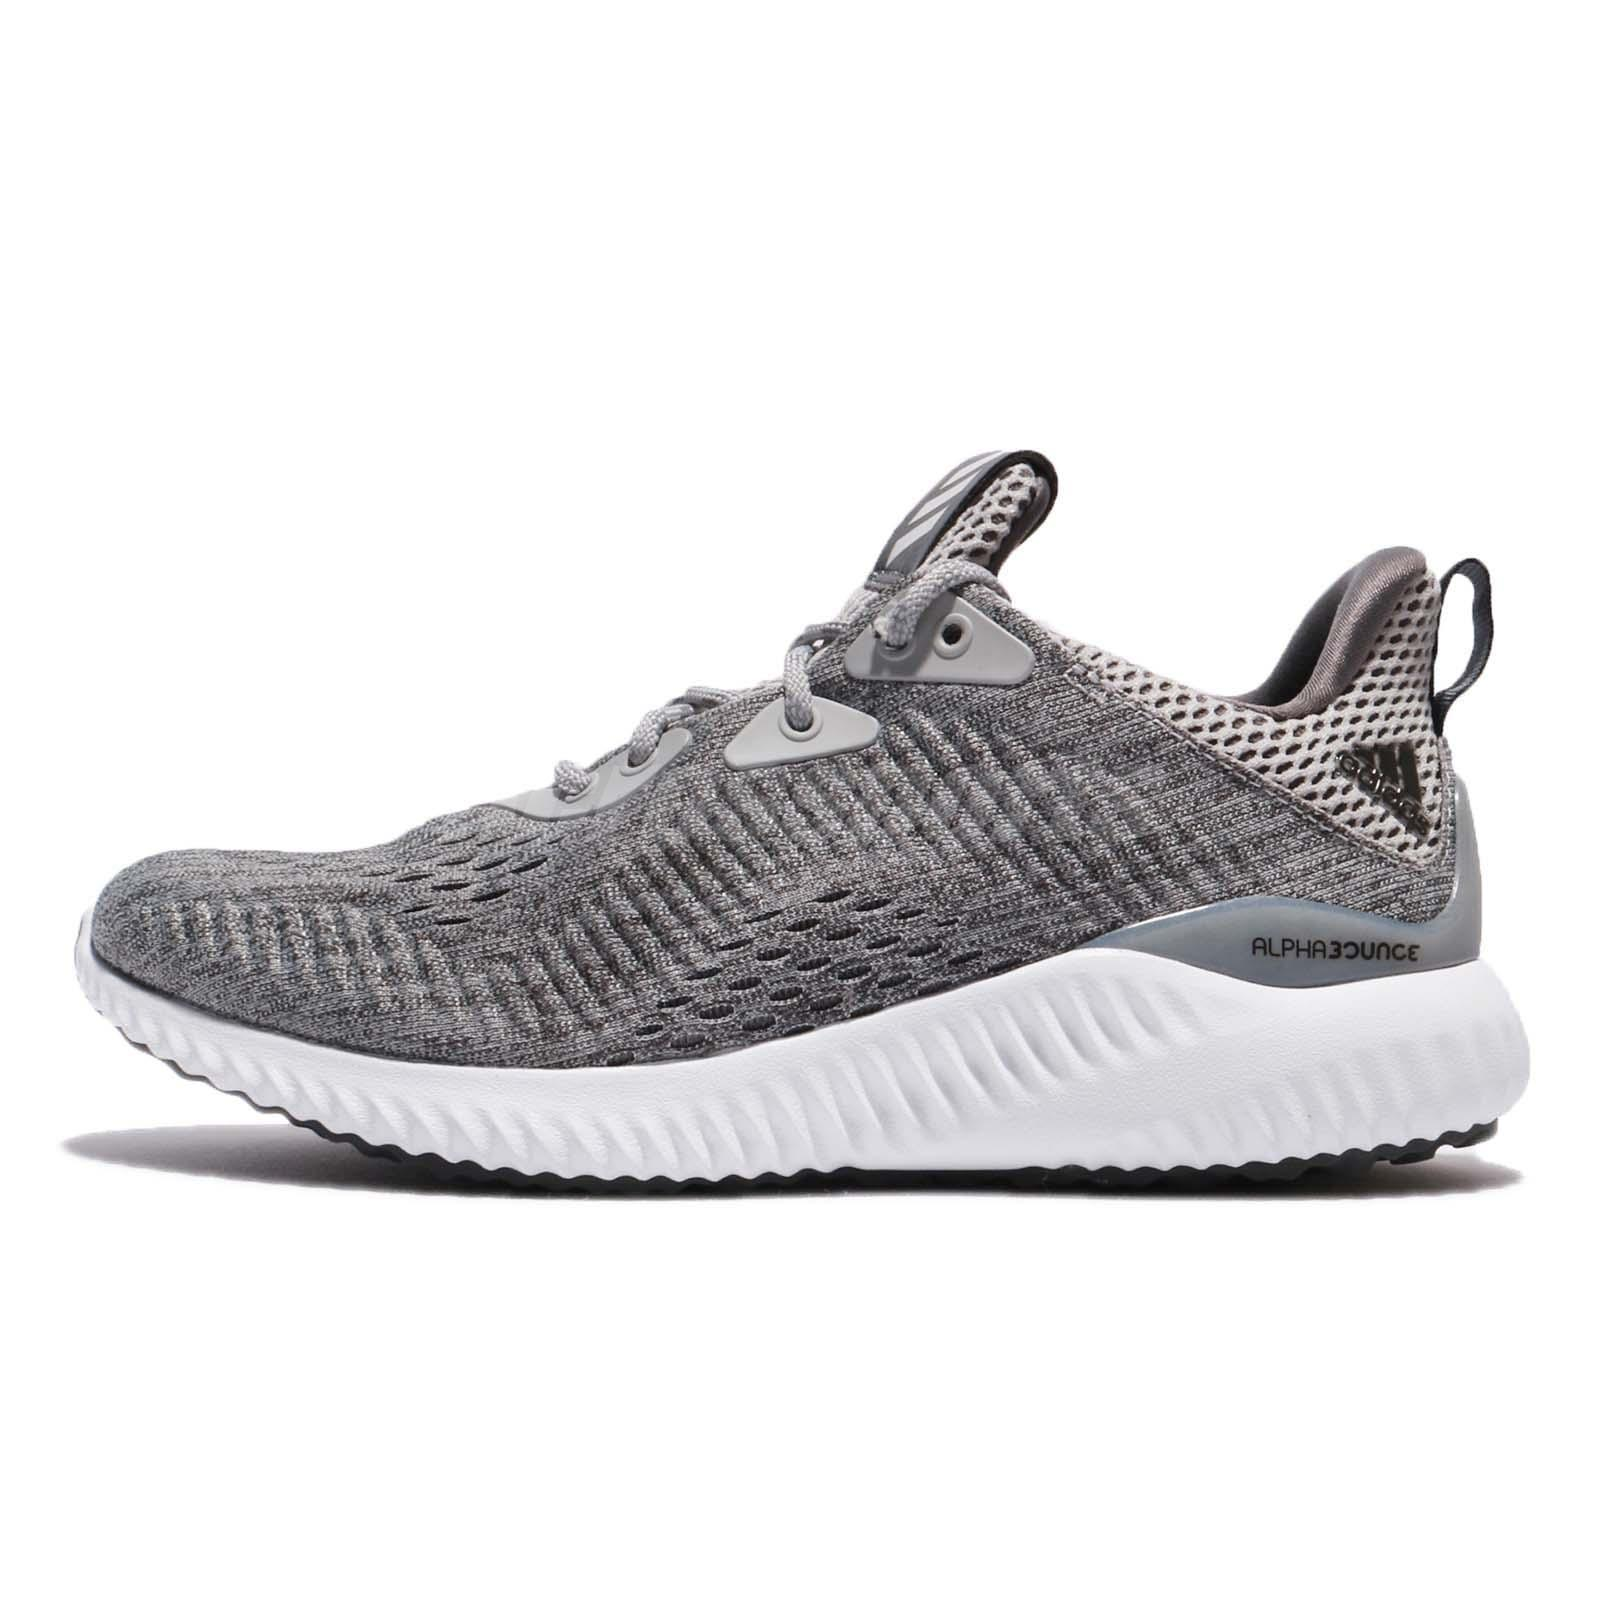 13ff0ef45 adidas Alphabounce EM W Engineered Mesh Grey White Women Running Shoes  BW1194